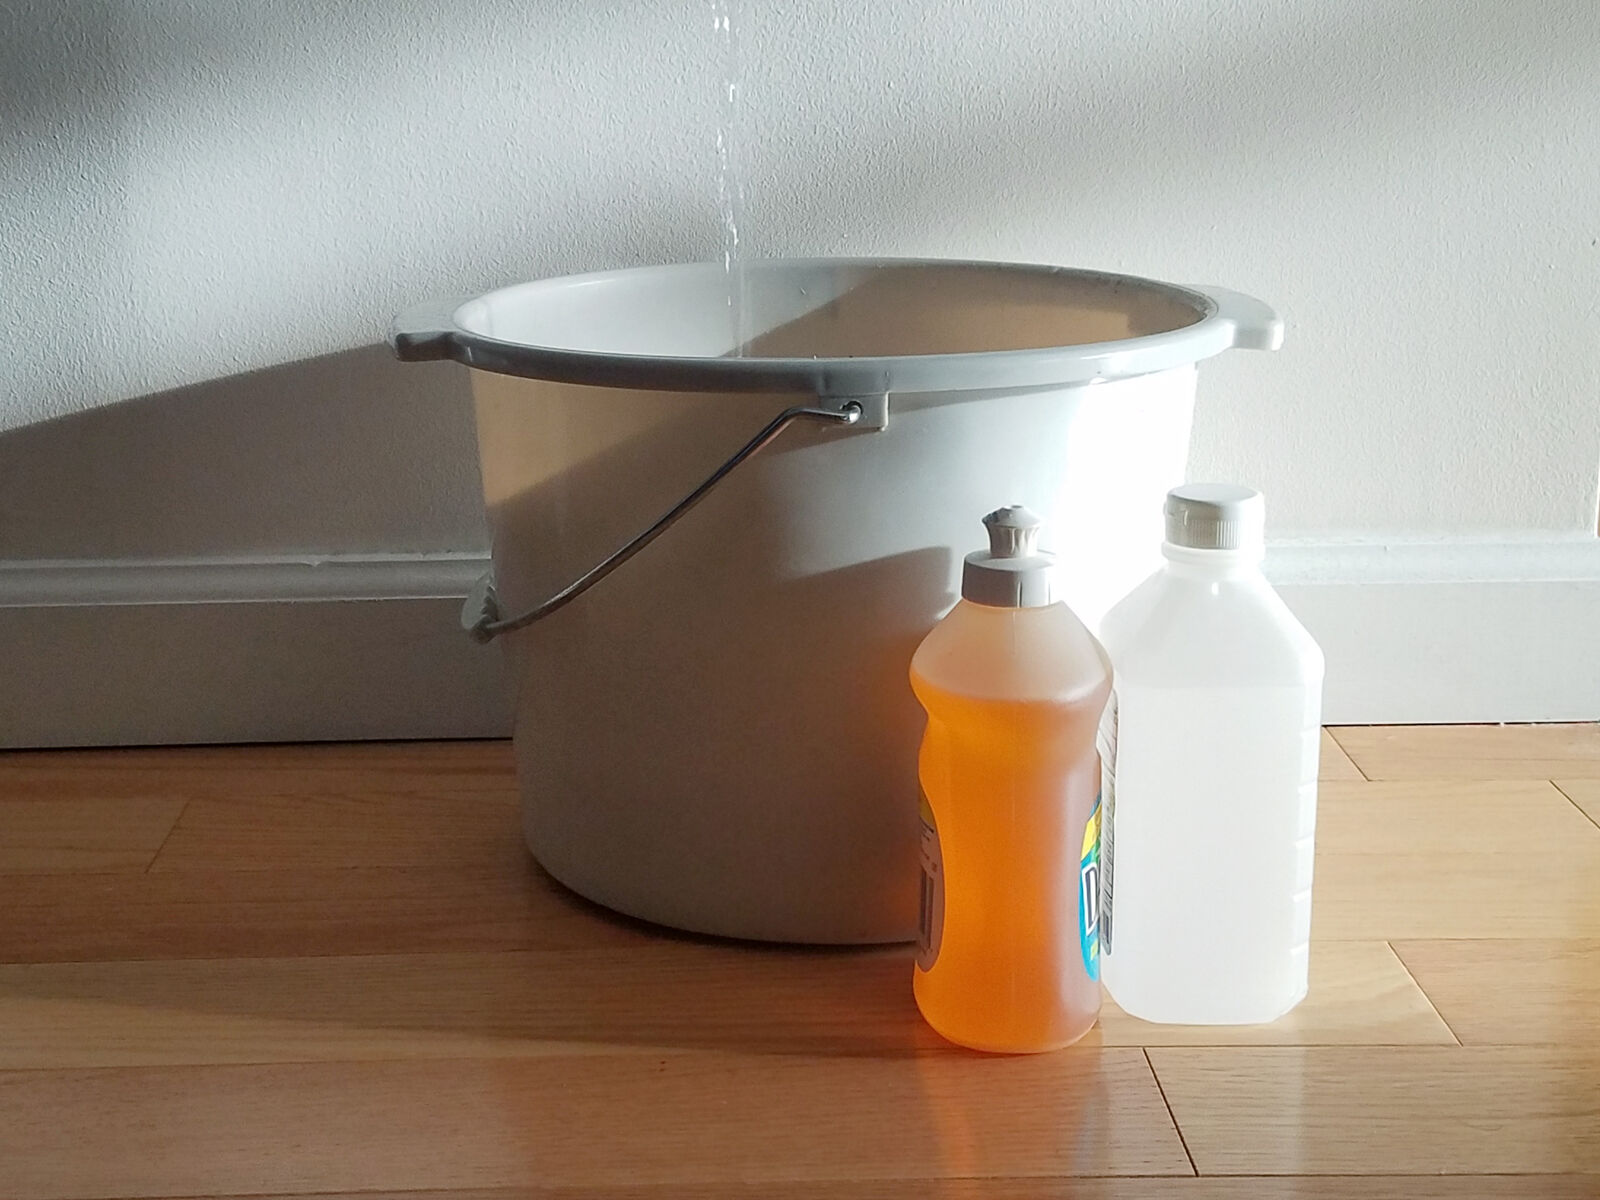 bucket of hot water with dish soap and rubbing alcohol